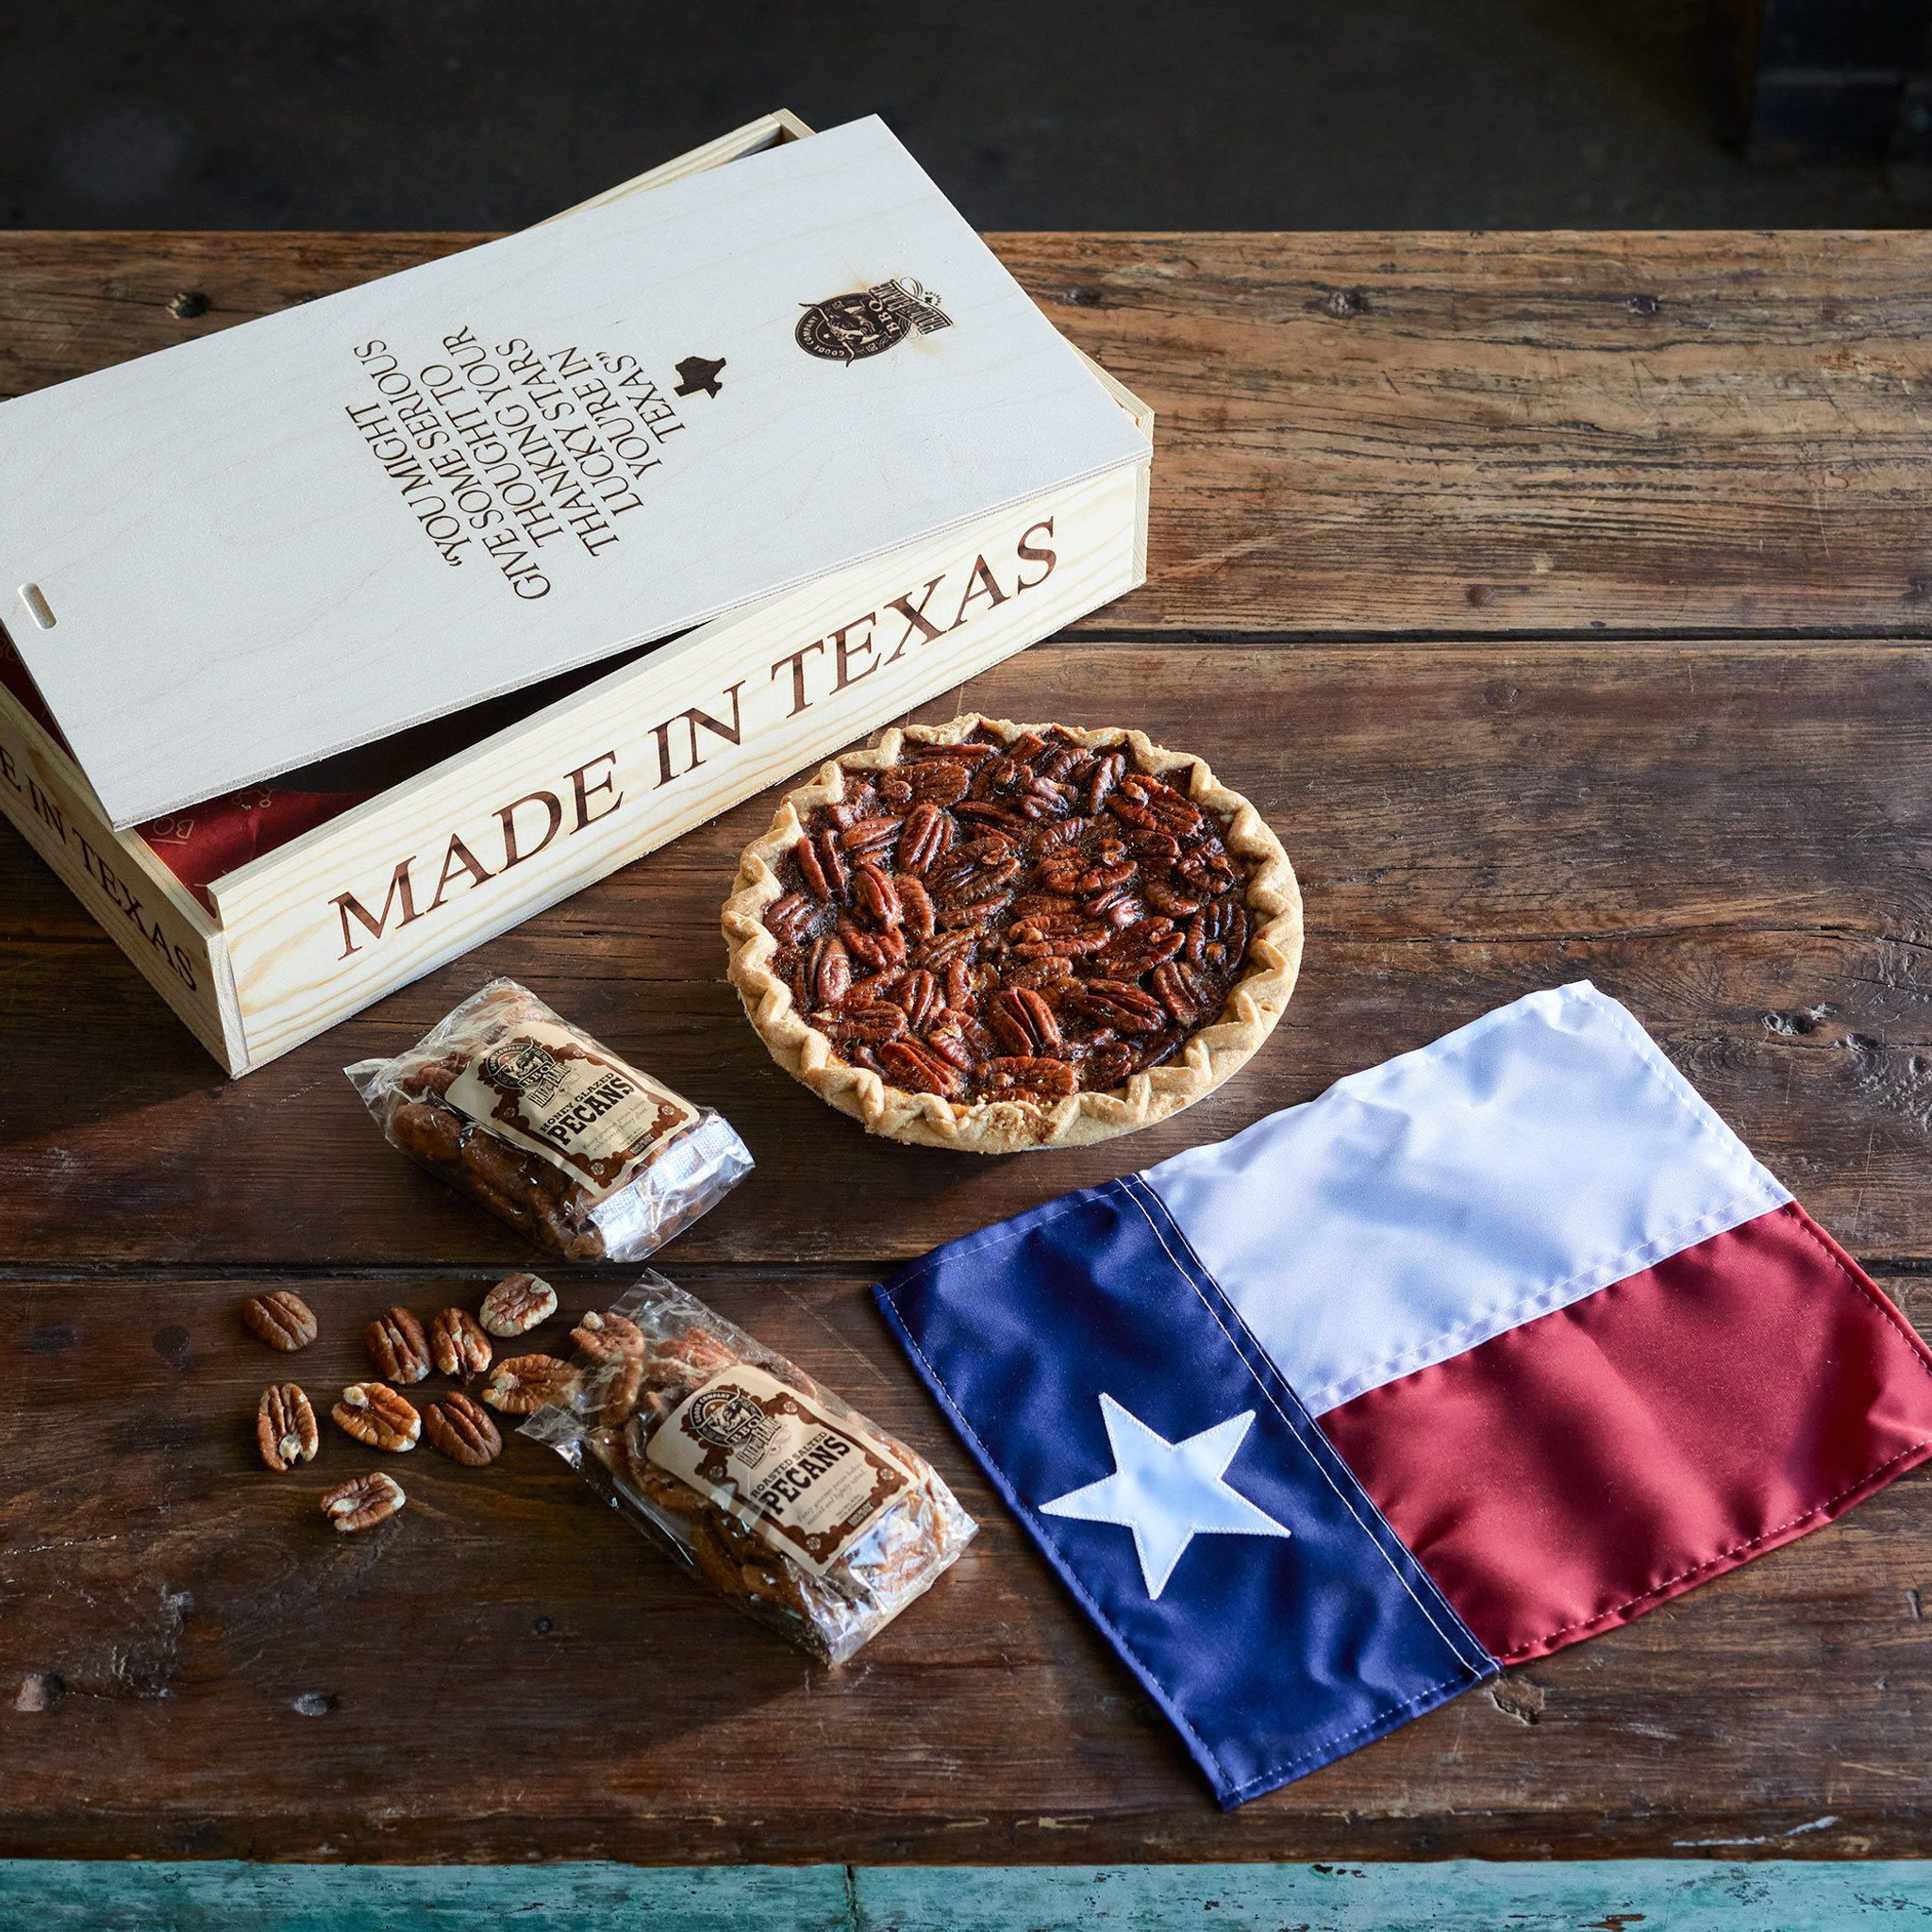 Goode Co's Pure Texas fire-branded wooden gift box, consisting of a personal-sized Brazos Bottom Pecan Pie, bag of Honey-Glazed Pecans, bag of Roasted Salted Pecans, and a mini Texas state flag.